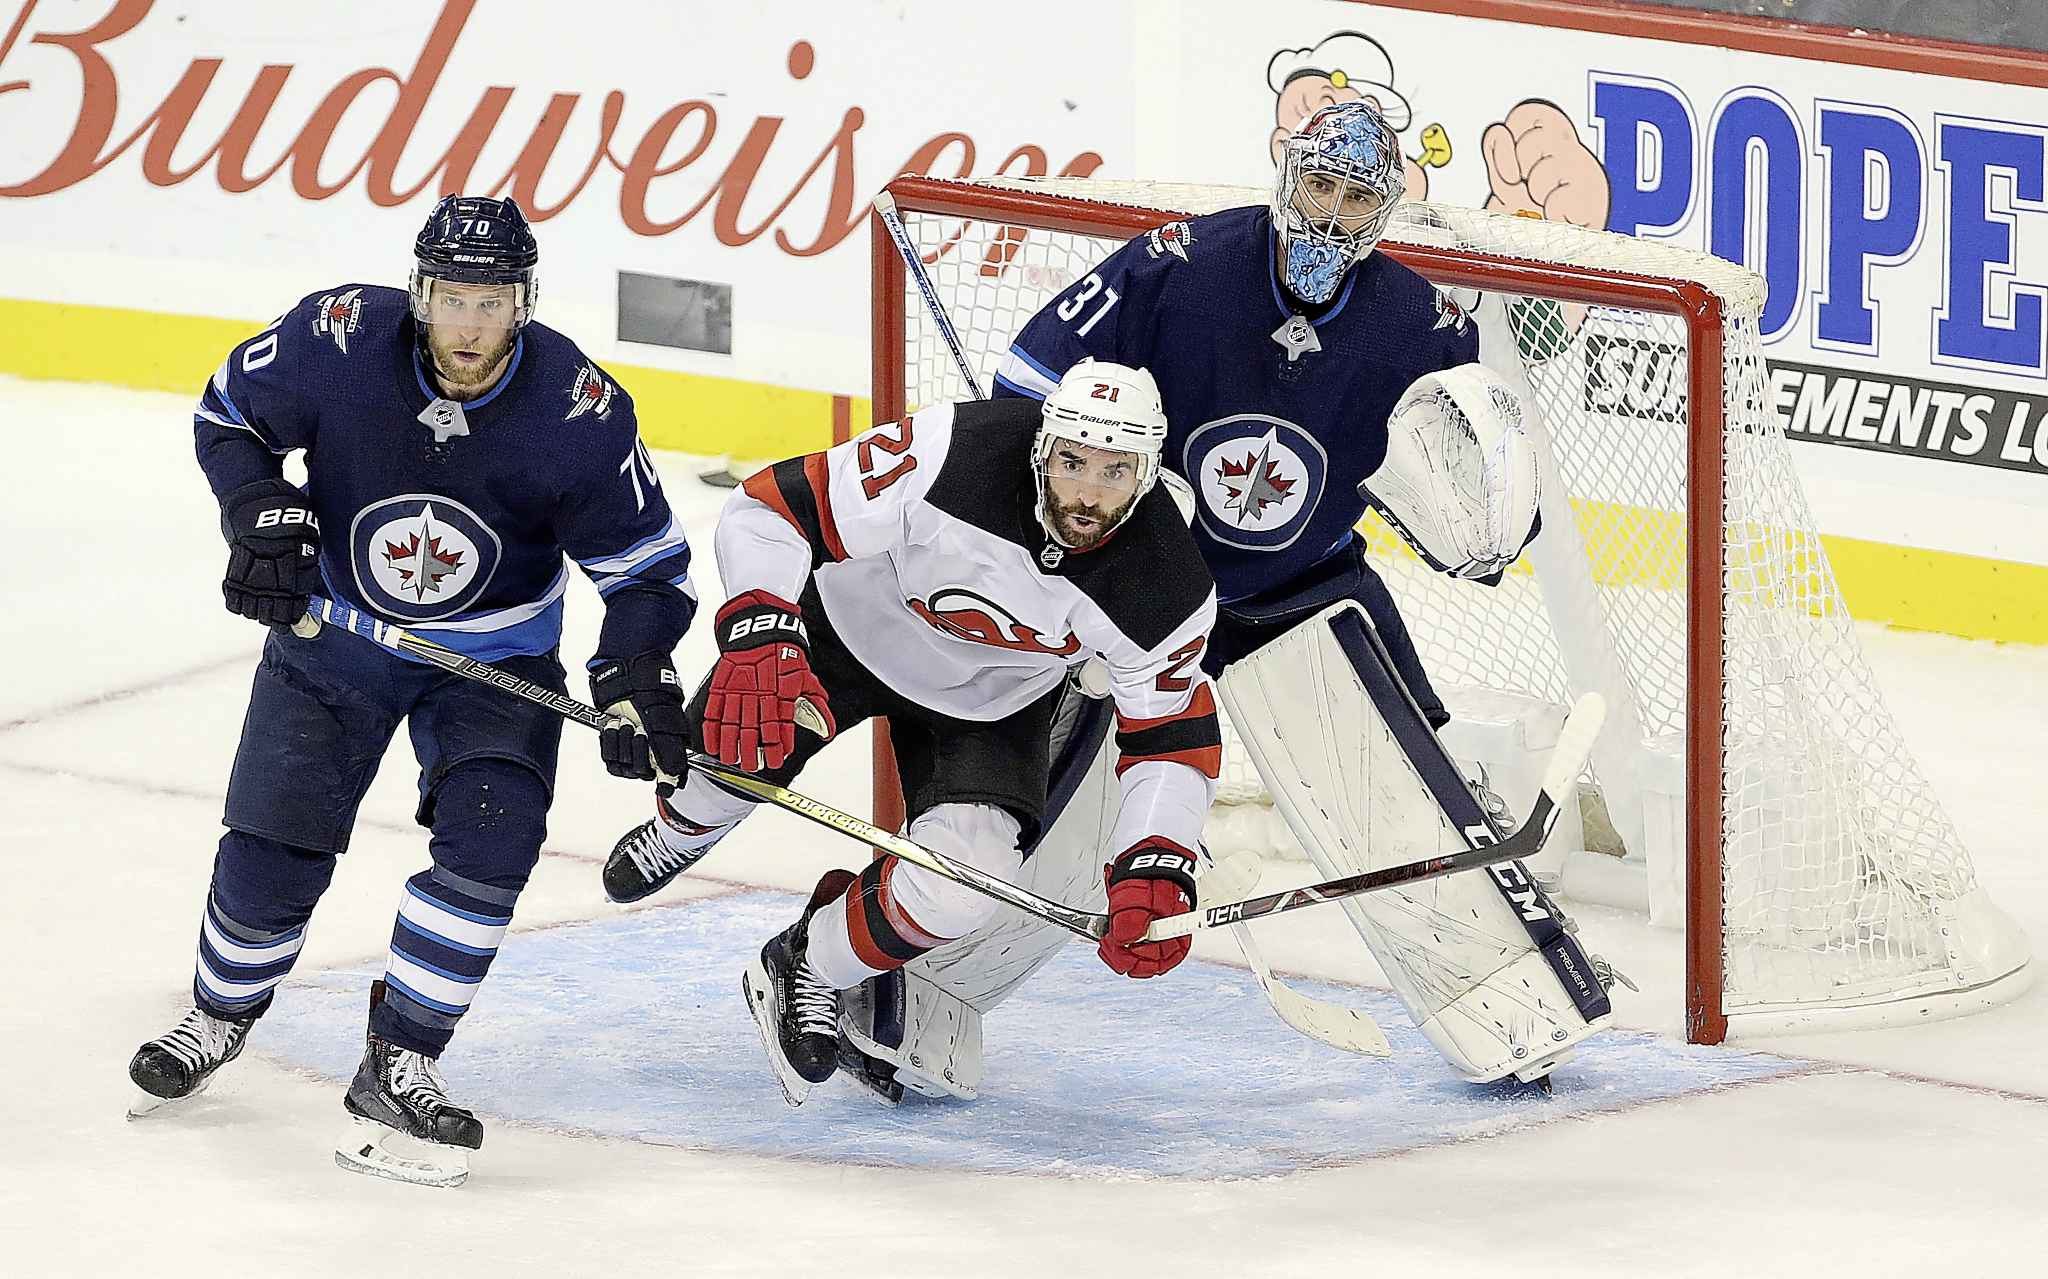 New Jersey Devils forward Kyle Palmieri ights for space in front of Winnipeg Jets goaltender Connor Hellebuyck and defenceman Joe Morrow during the third period.